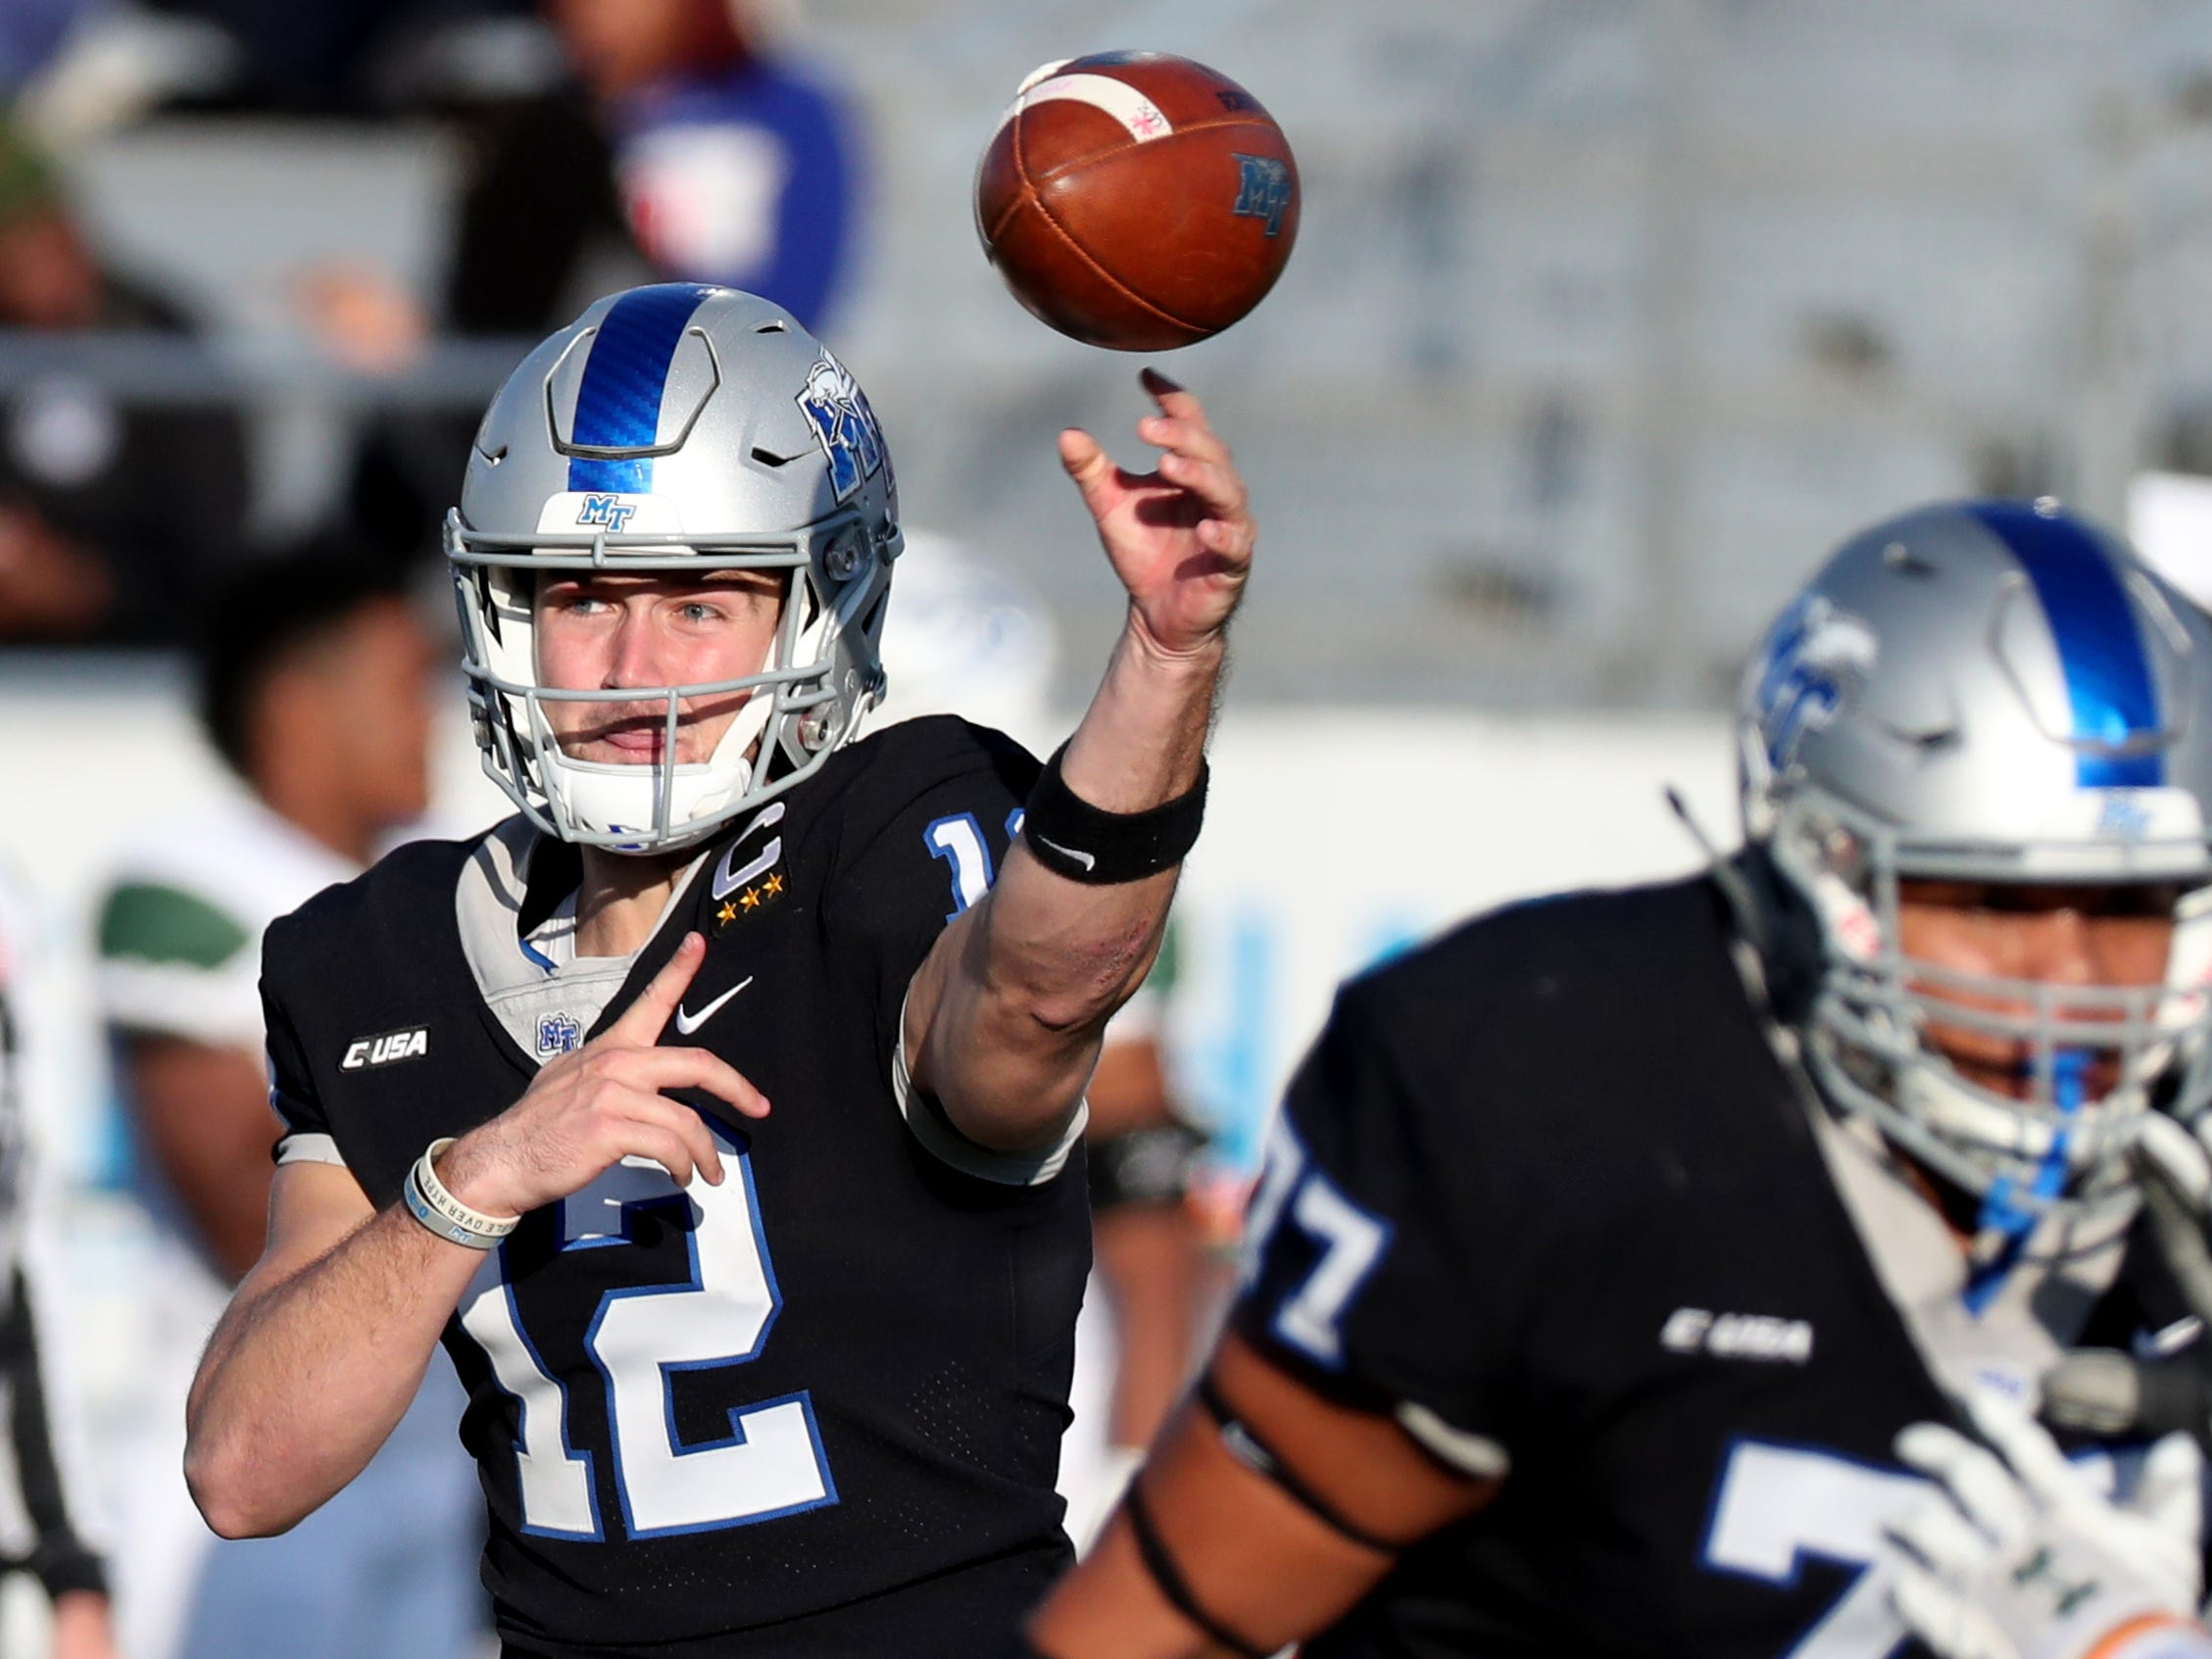 MTSU's quarterback Brent Stockstill (12) passes the ball during the game against UAB at MTSU on Saturday, Nov. 24, 2018.